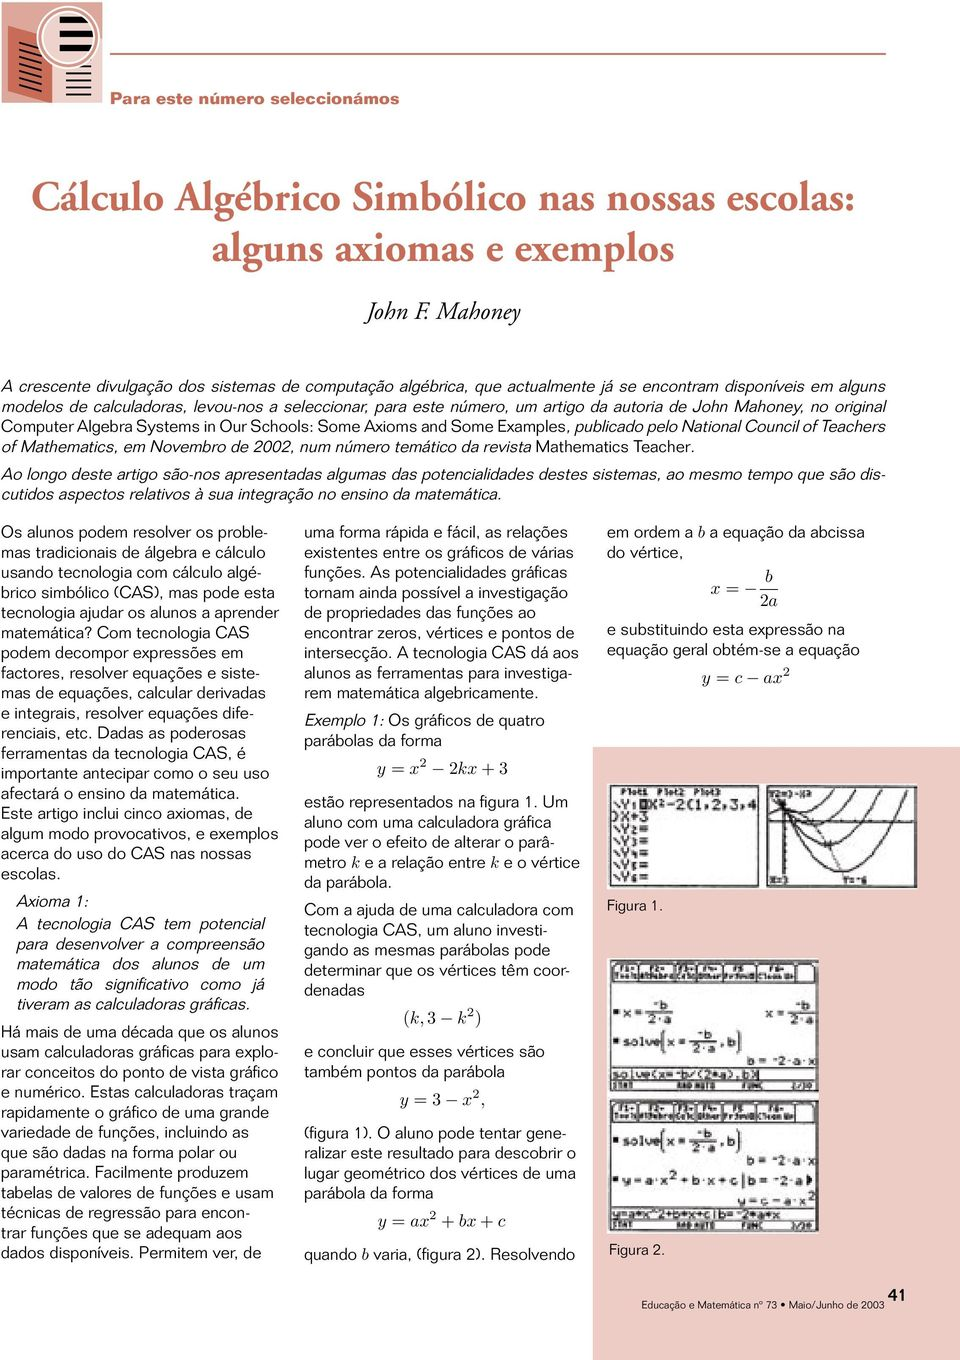 artigo da autoria de John Mahoney, no original Computer Algebra Systems in Our Schools: Some Axioms and Some Examples, publicado pelo National Council of Teachers of Mathematics, em Novembro de 2002,